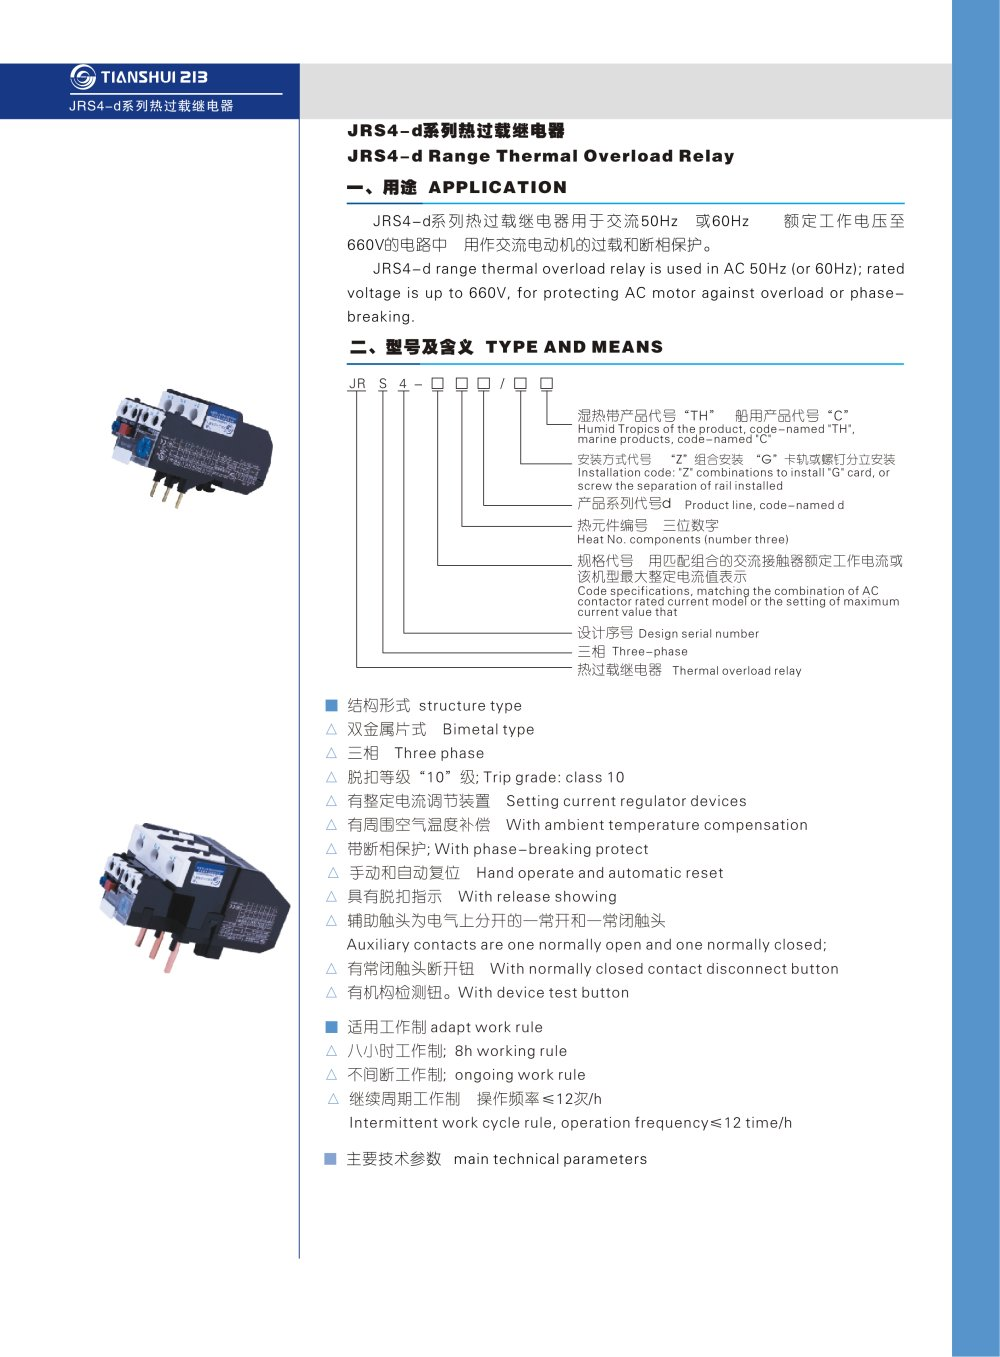 Jrs4 D Series Thermal Overload Relay Tianshui 213 Electrical Normally Open Or Closed 1 8 Pages